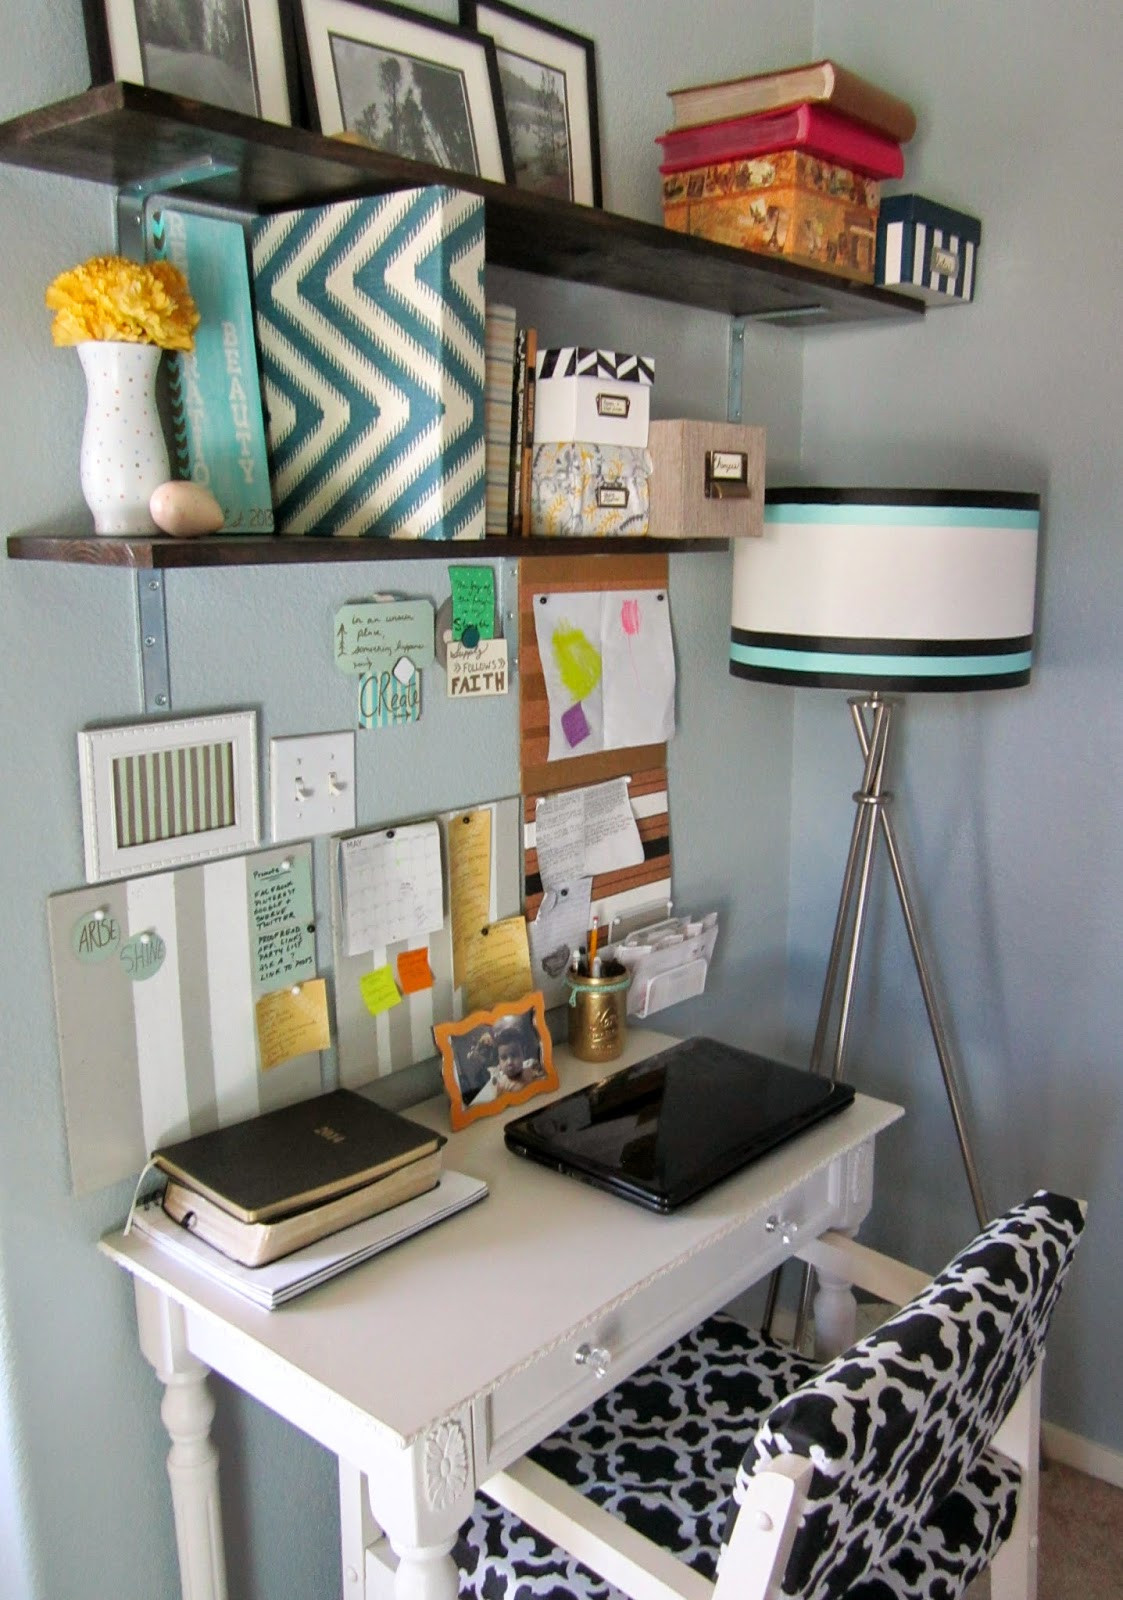 Best ideas about Organizing A Small Office Space . Save or Pin Restoration Beauty How To Organize A Small fice Work Now.